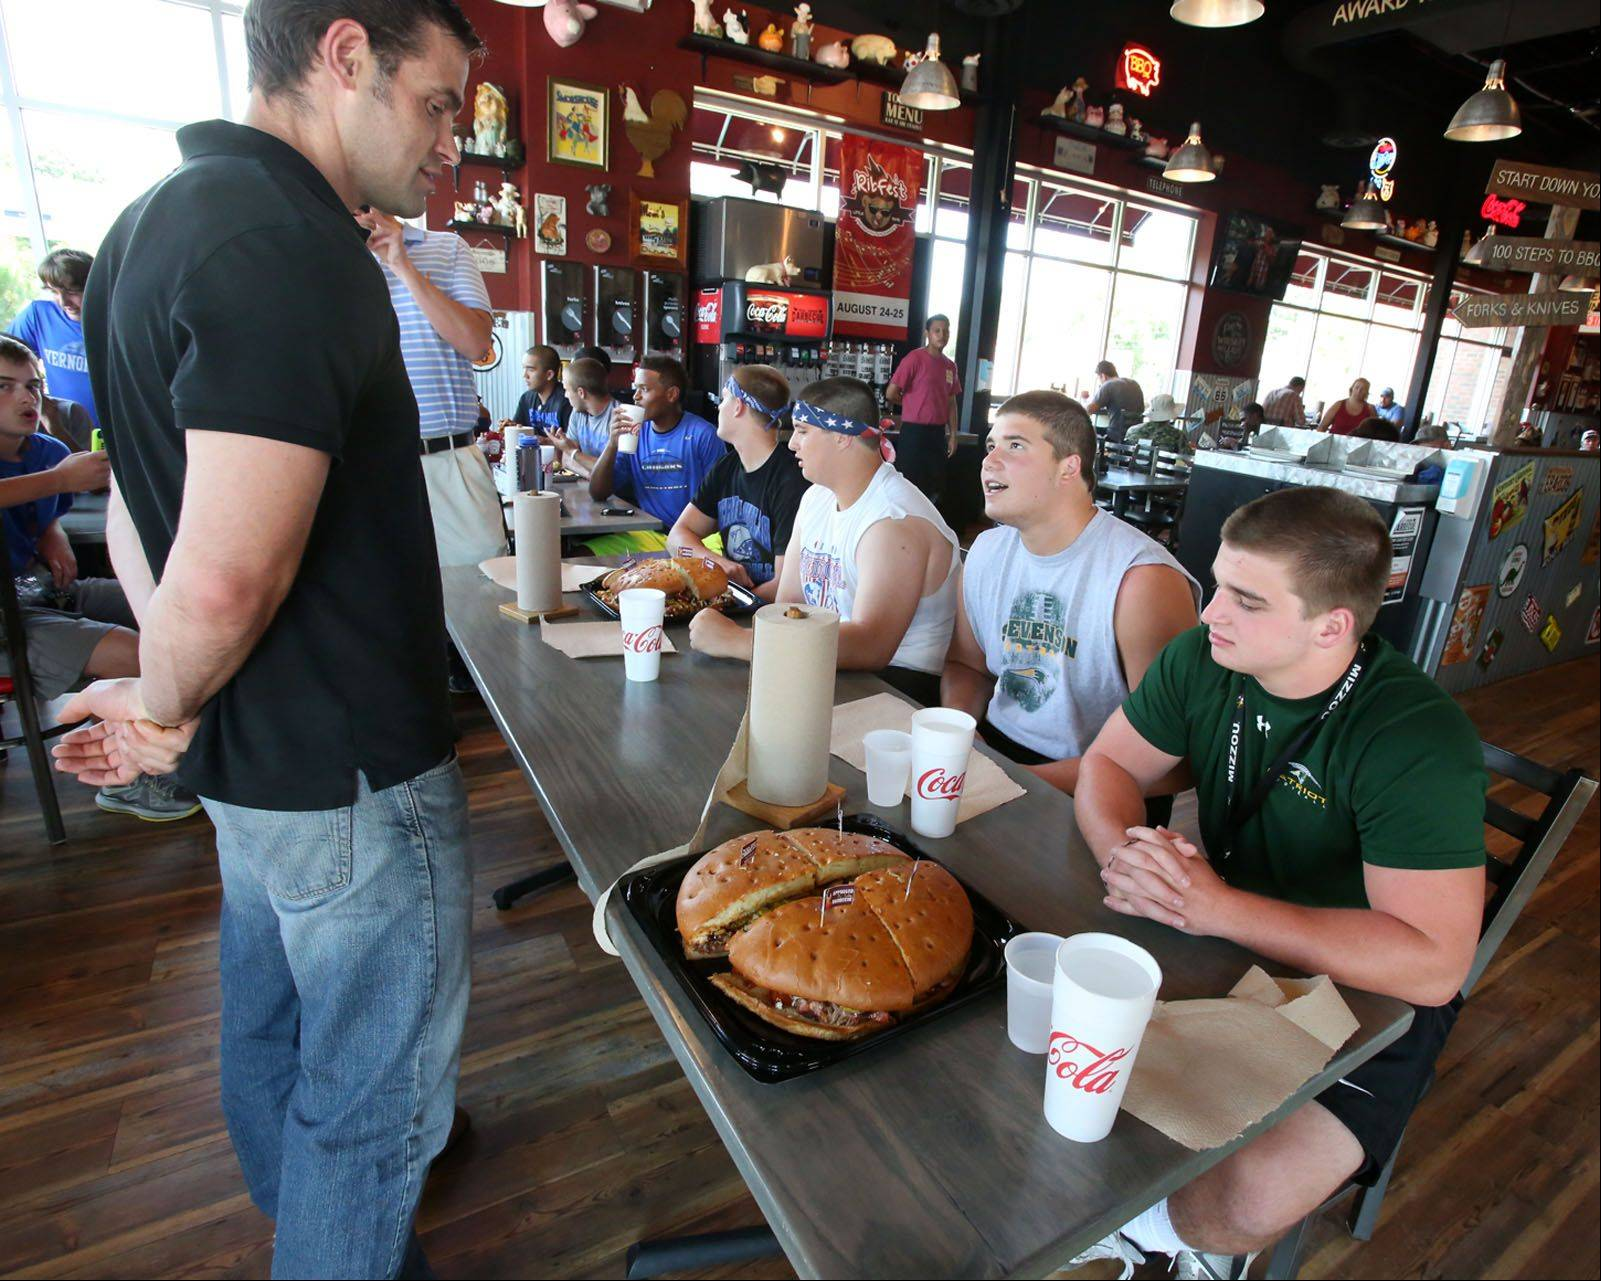 Reigning Hungry Home Wrecker champ, Jamie McDonald, coaches Stevenson High students Blake Drazner, foreground right, and Zach Novoselsky, second from right, before they compete against Vernon Hills High students Jake Campbell and Joe Blitstein, far left, in an eating contest at Real Urban Barbecue in Vernon Hills on Saturday.